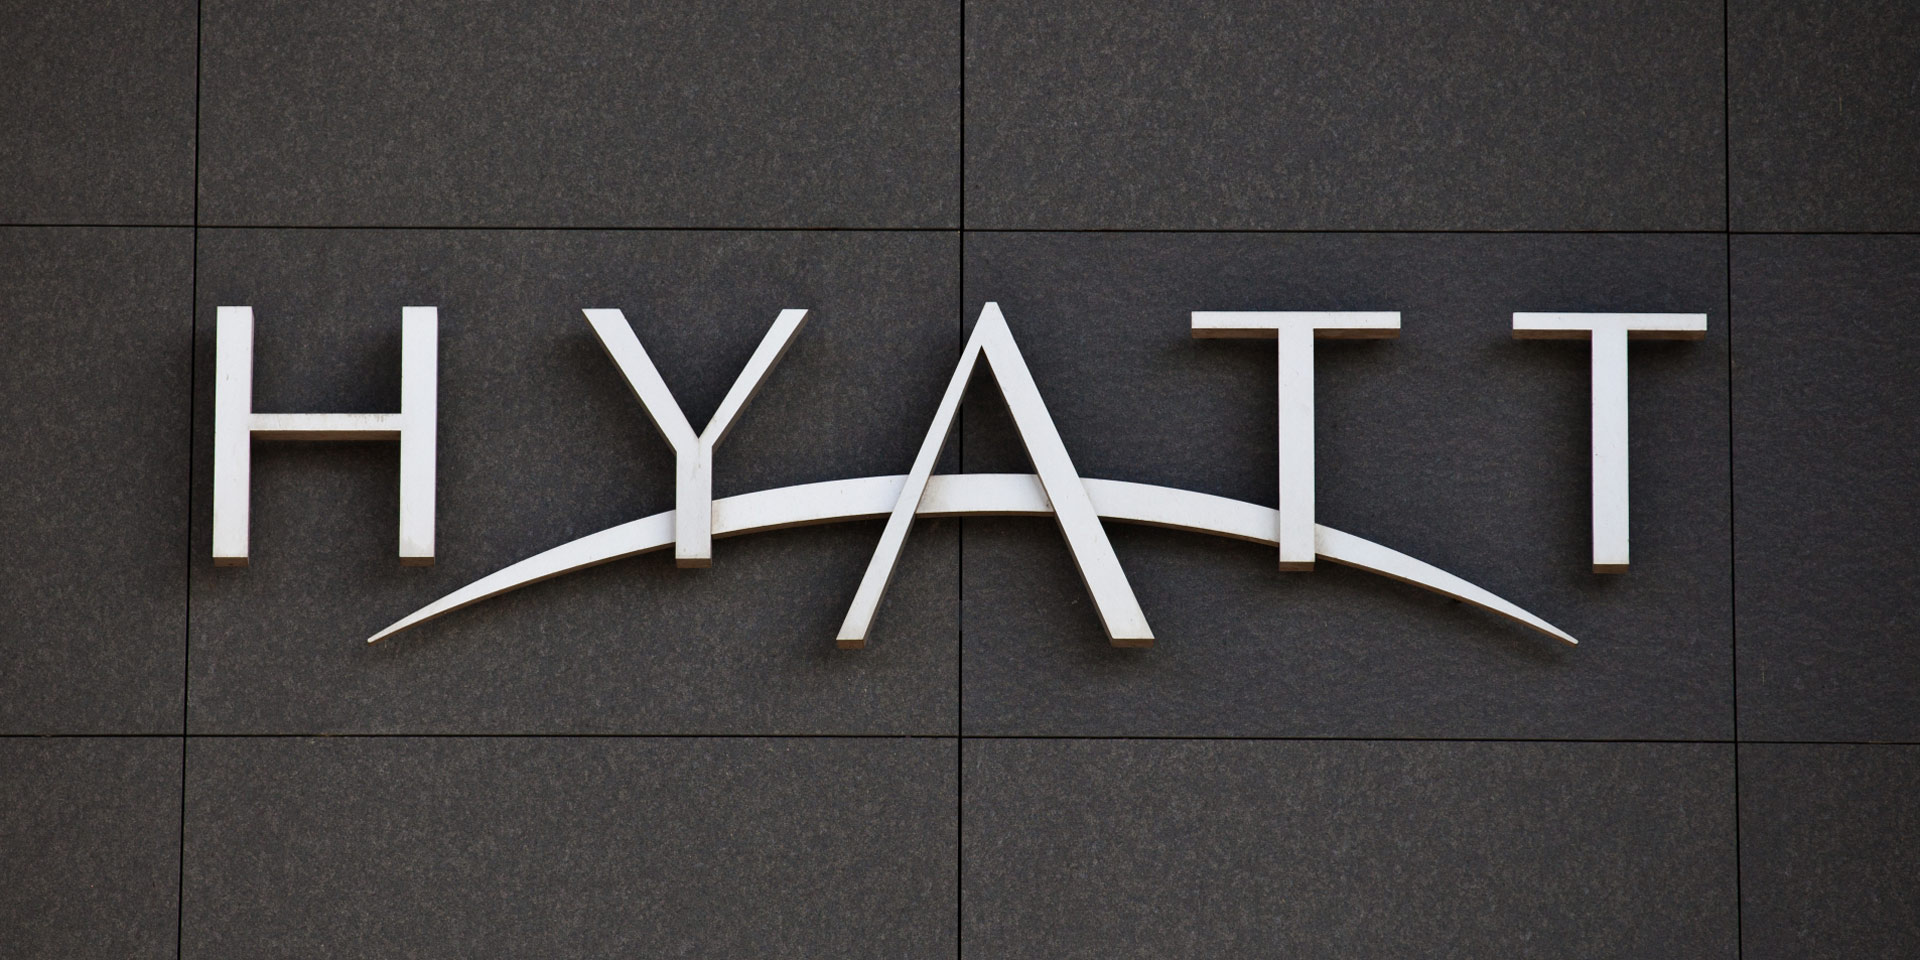 Guests to benefit from Oasis home-sharing platform through Hyatt loyalty scheme [Download Chain Report]